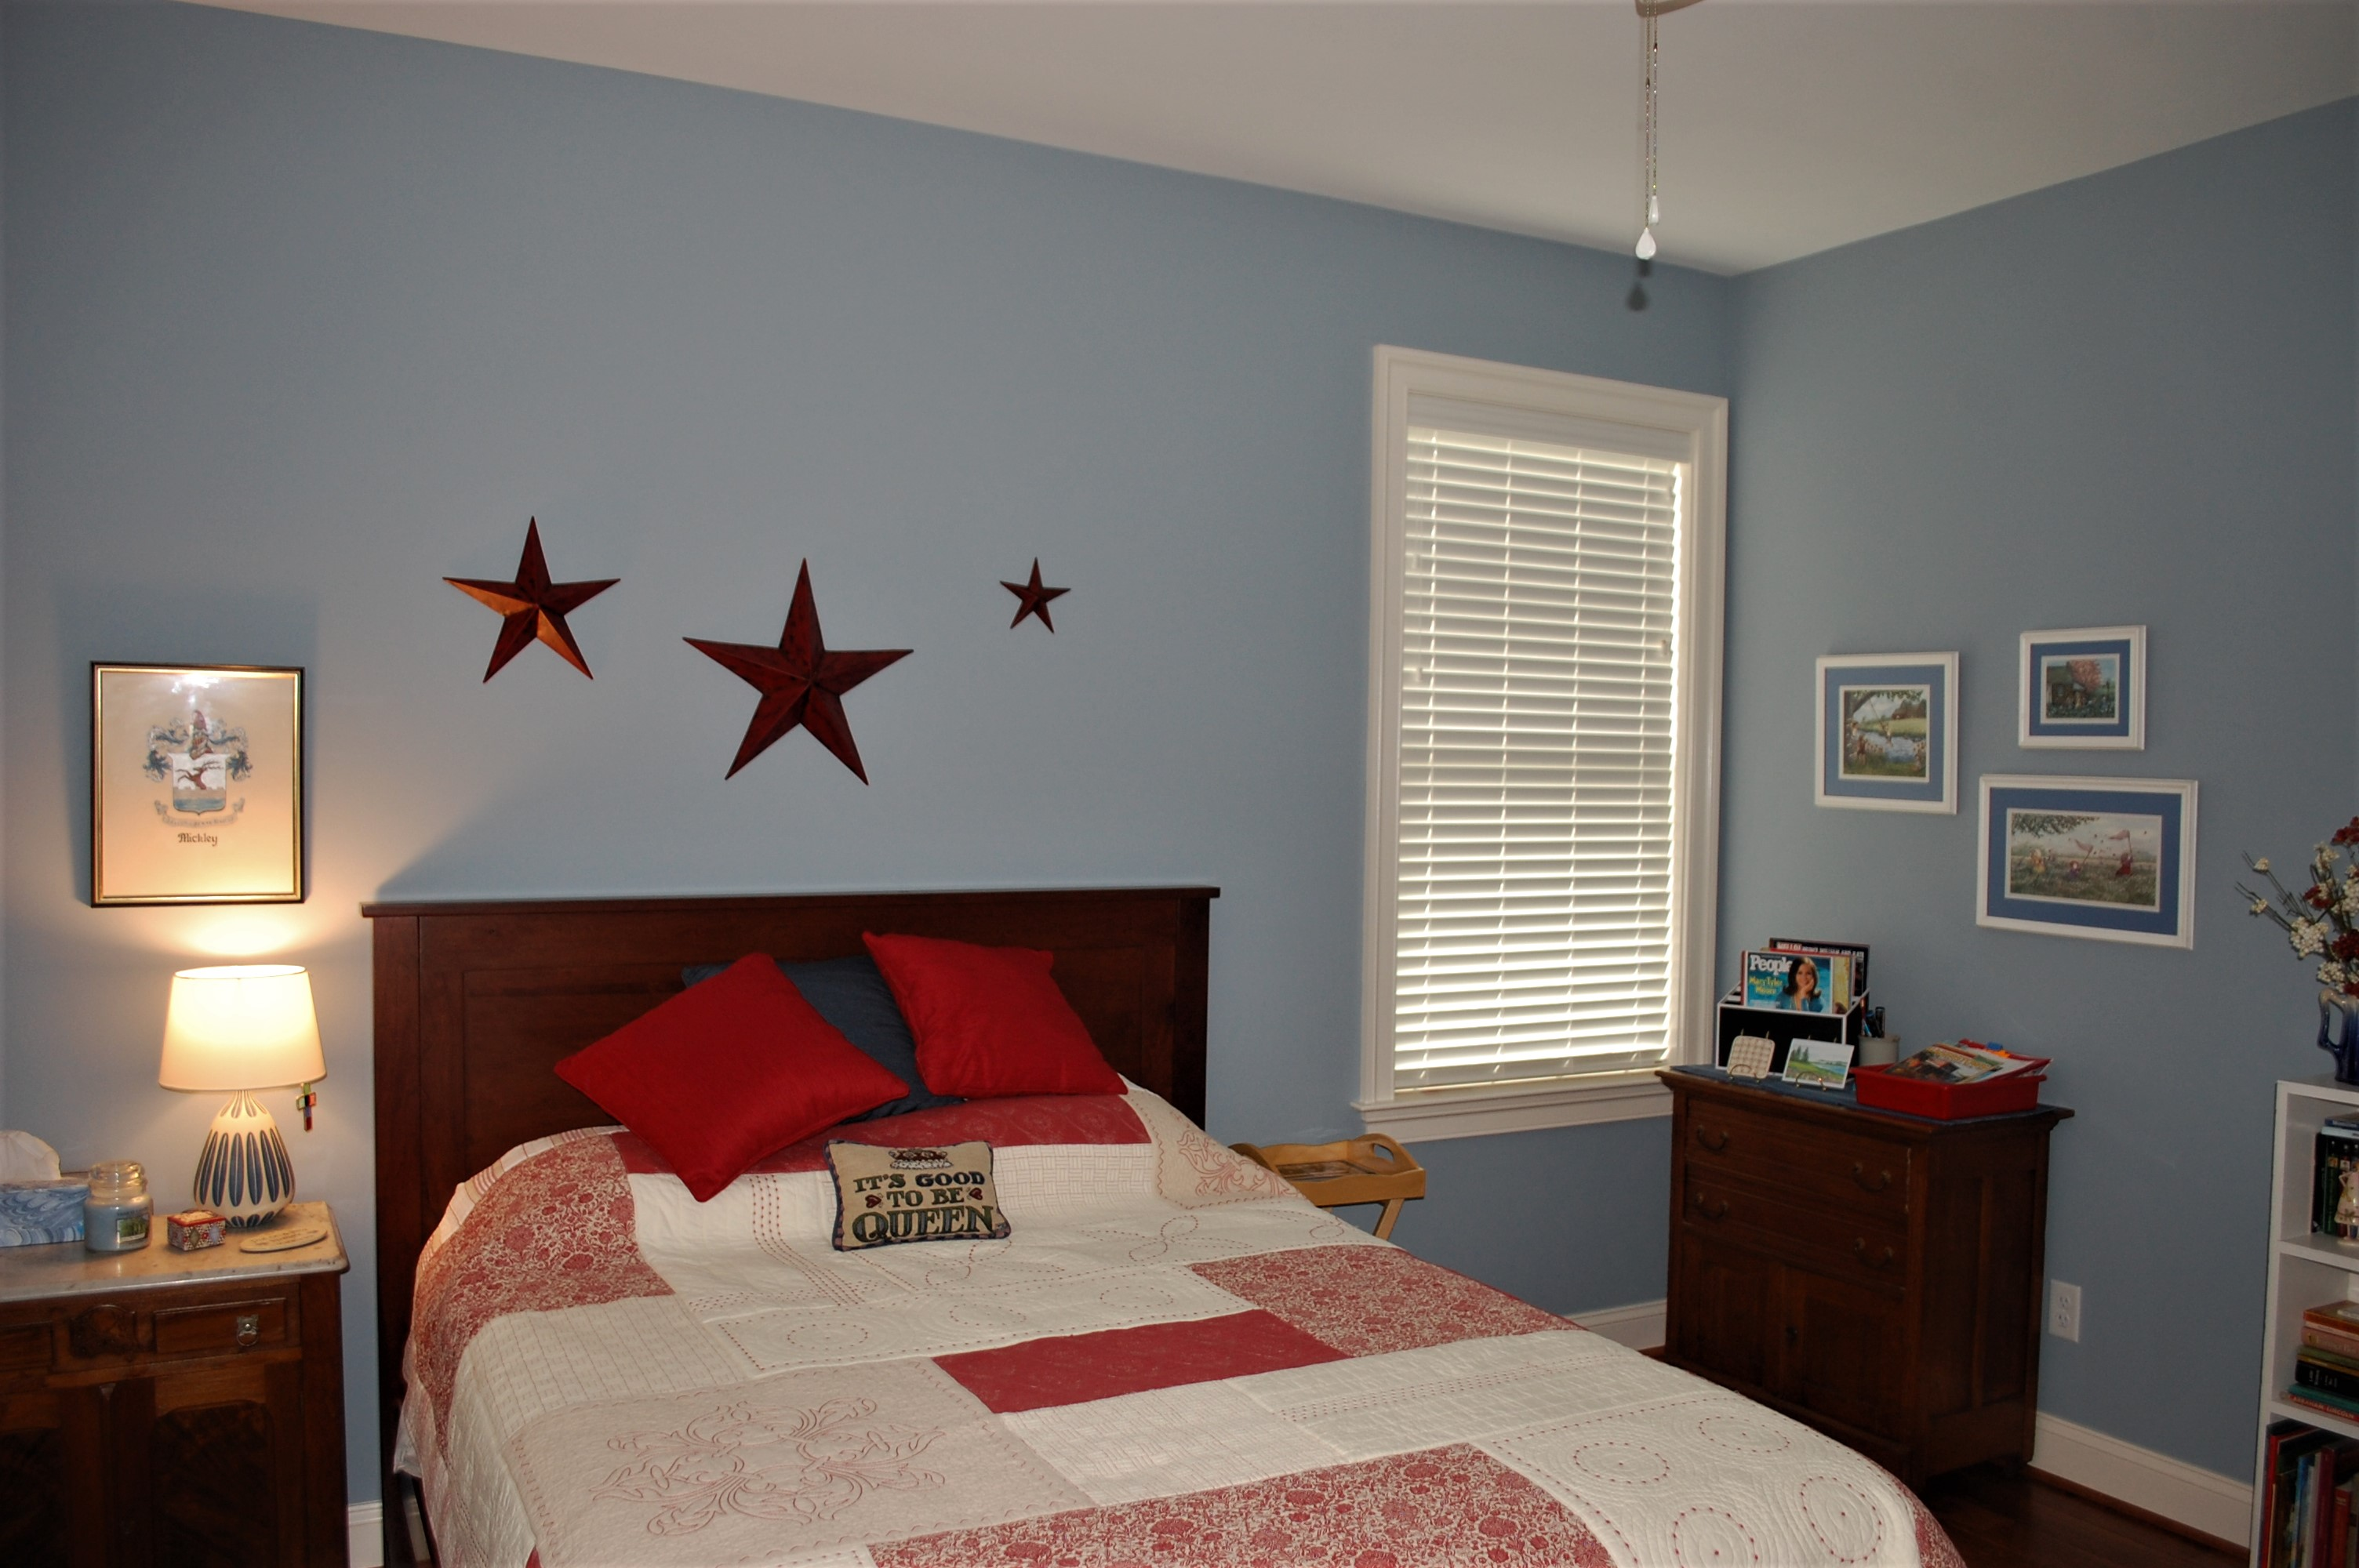 Williamsport, MD Cape Cod Bedroom in custom home built by Mt. Tabor Builders